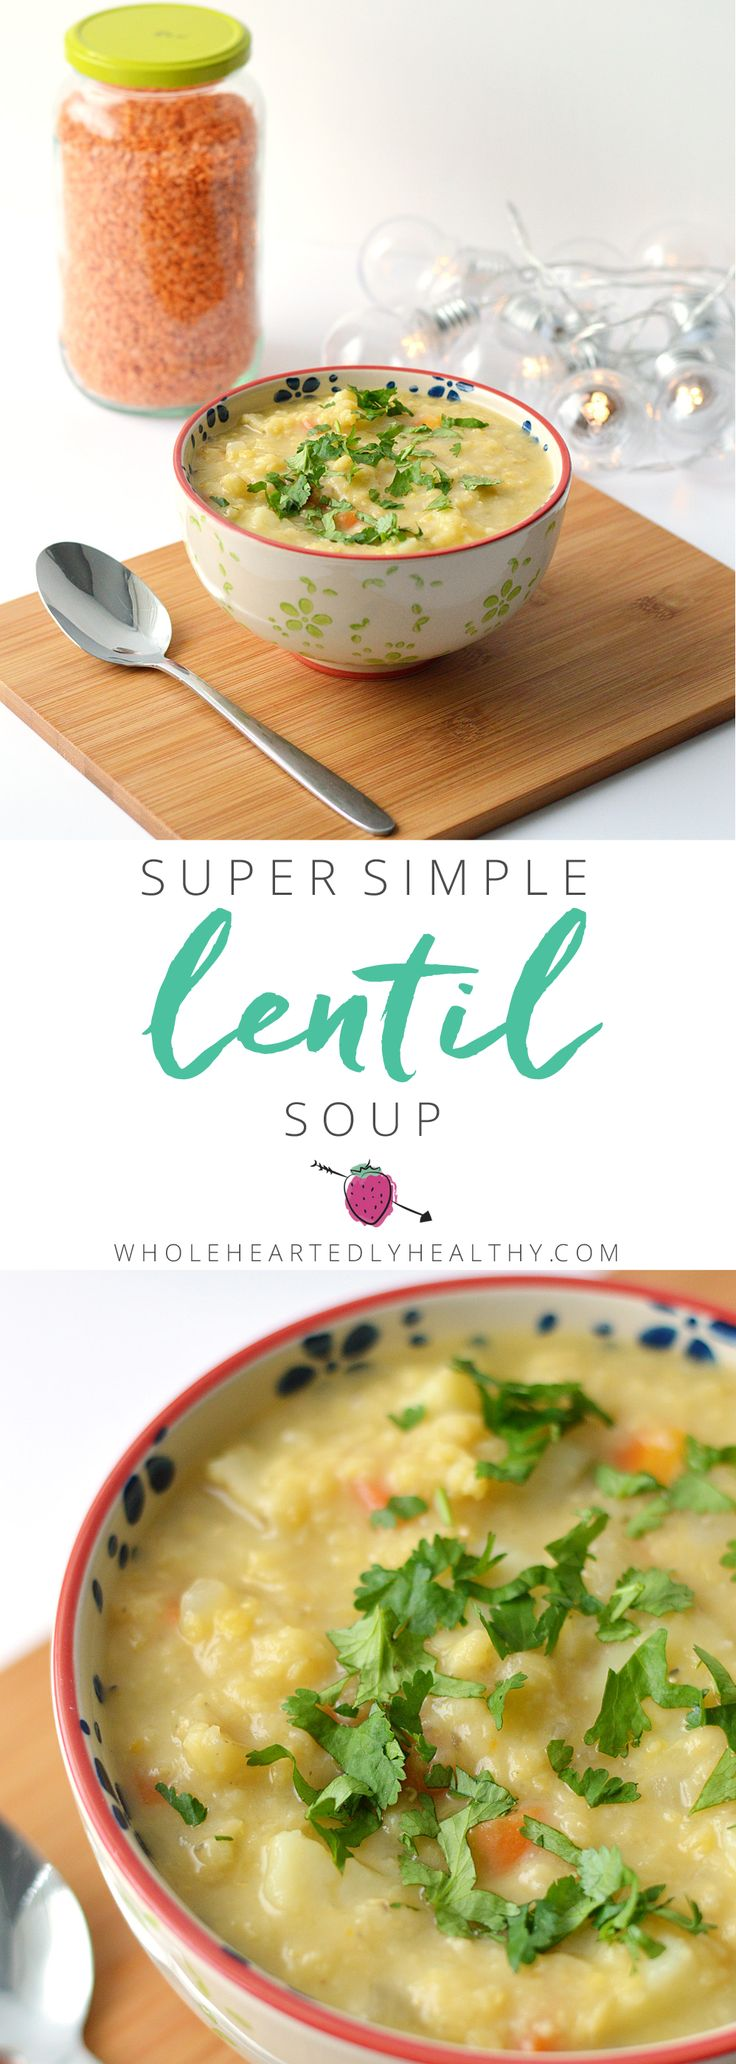 Vegan lentil soup made with only 5 ingredients! Simple delicious and nourishing soup recipe.